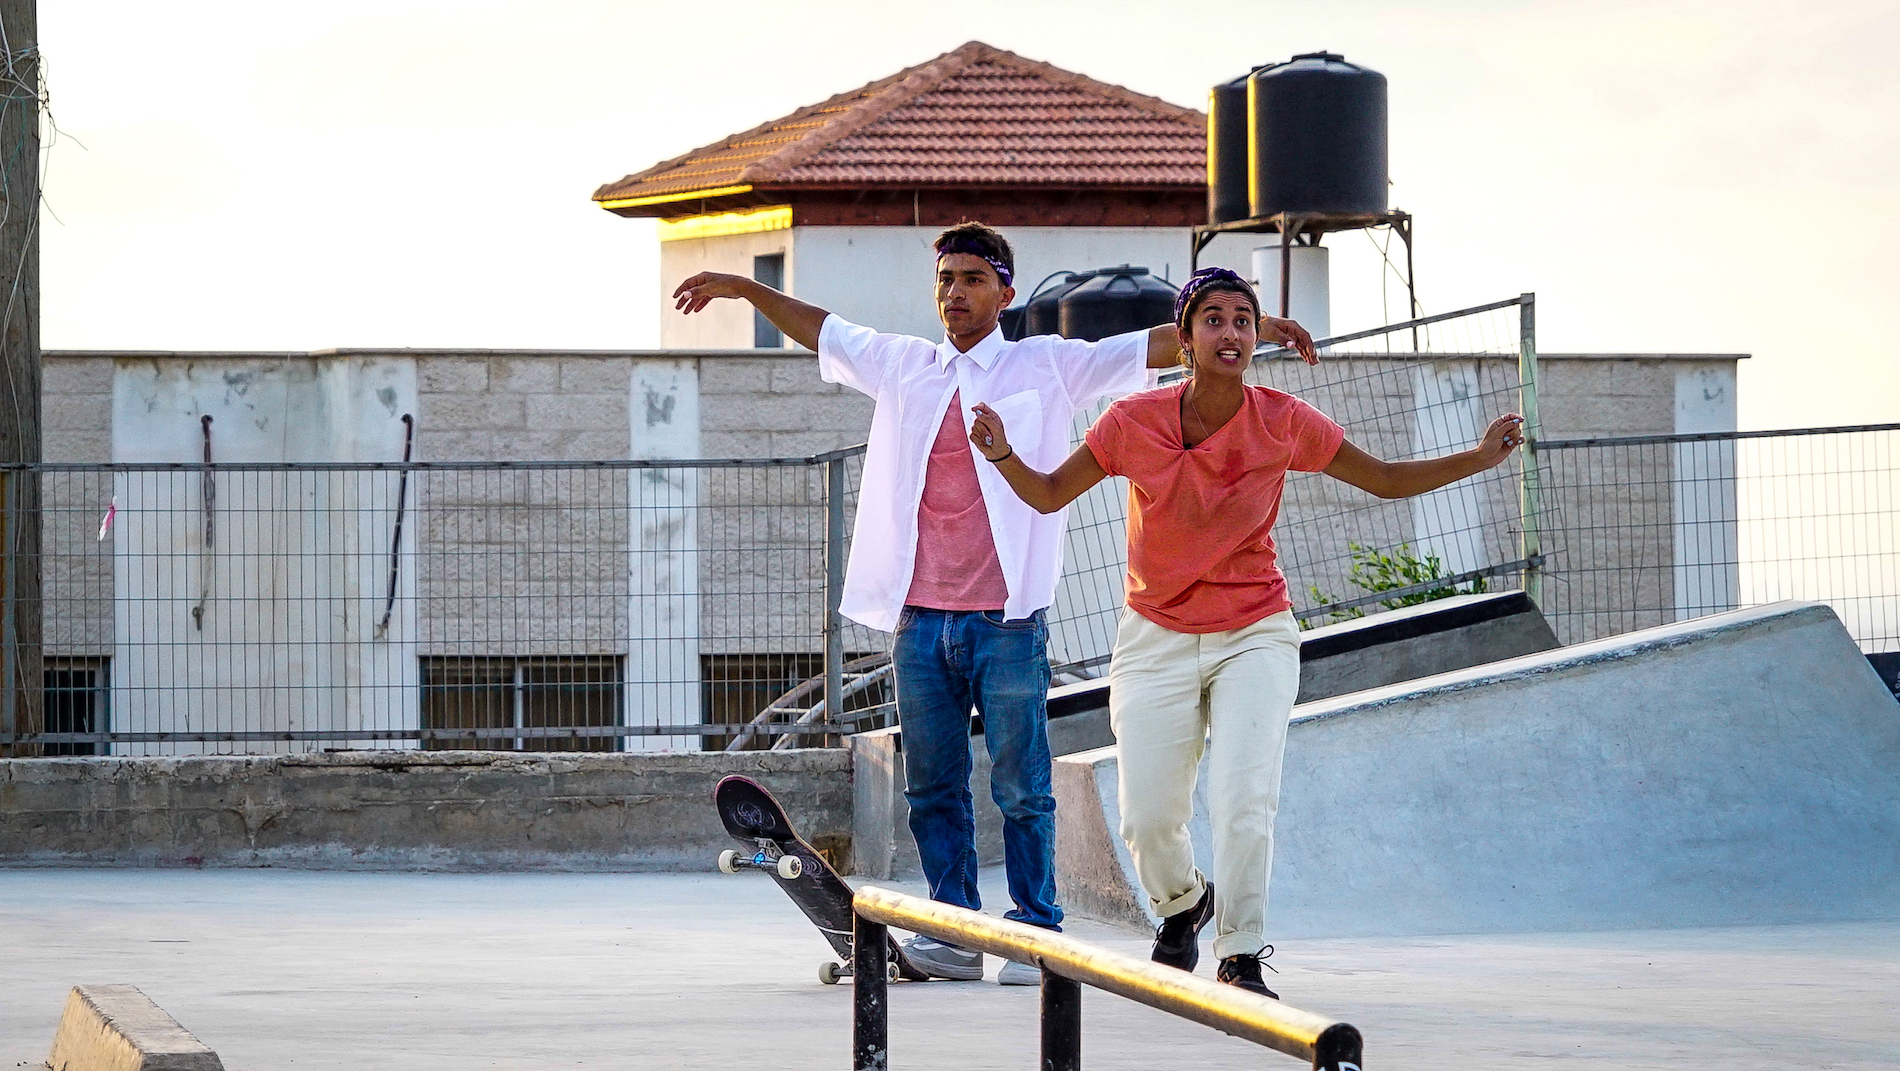 Actors in the skate park for A Skate Play